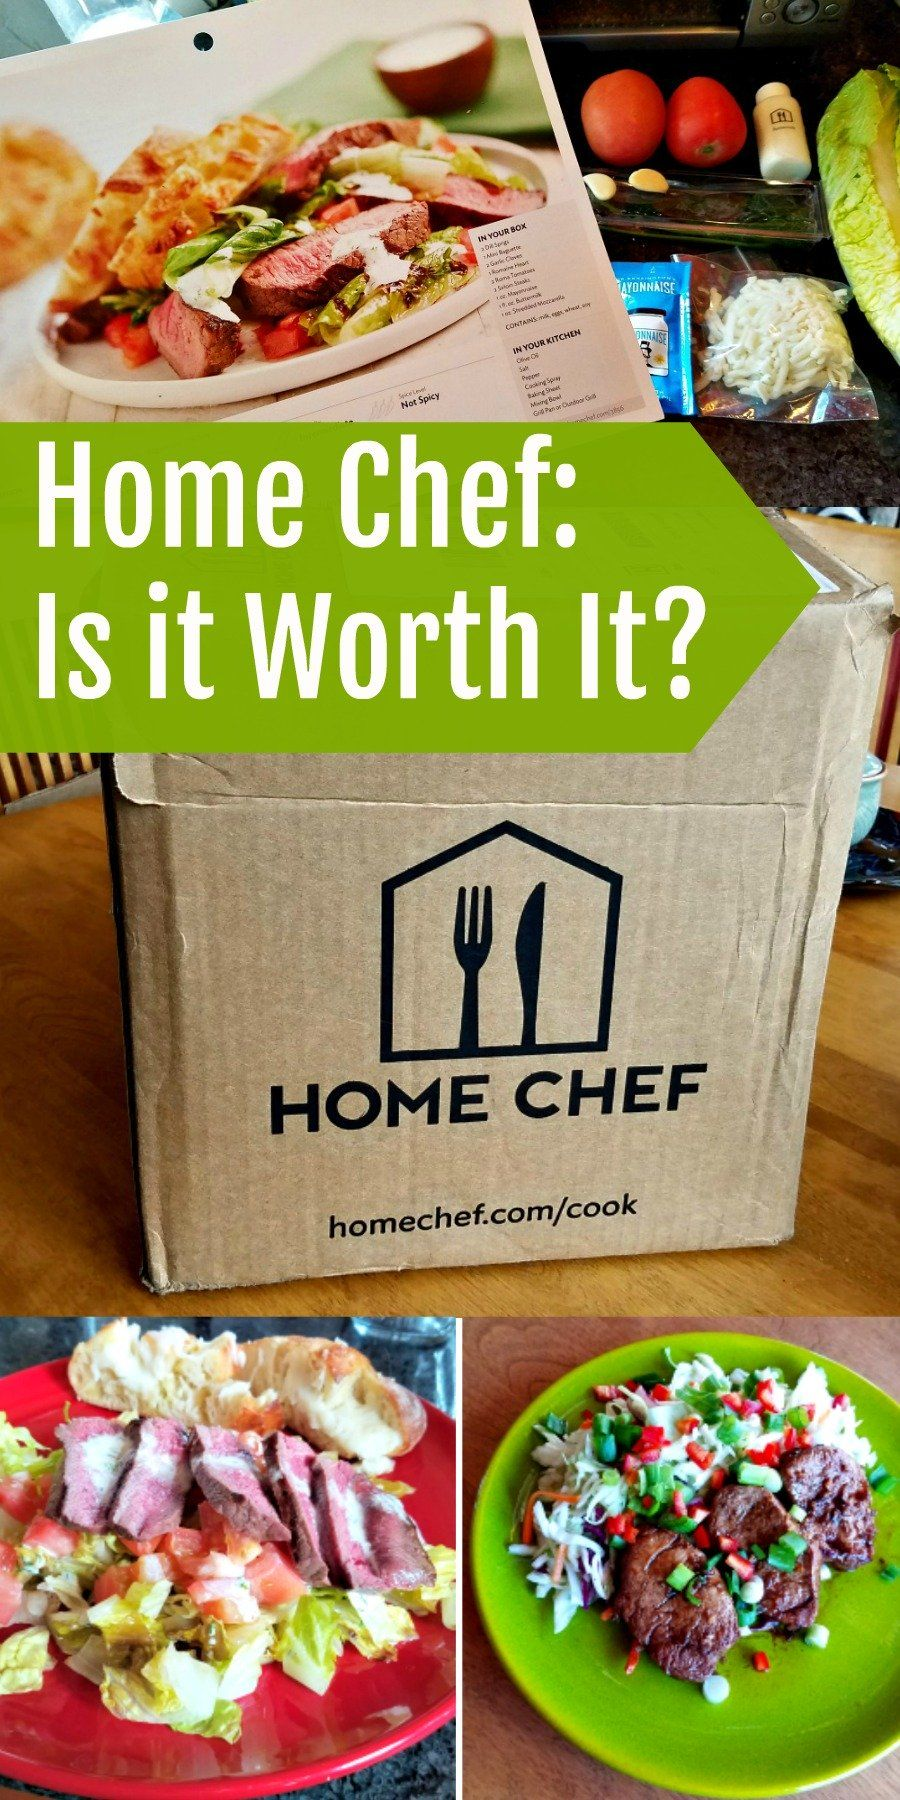 Home chef dinner in a box review home chef home